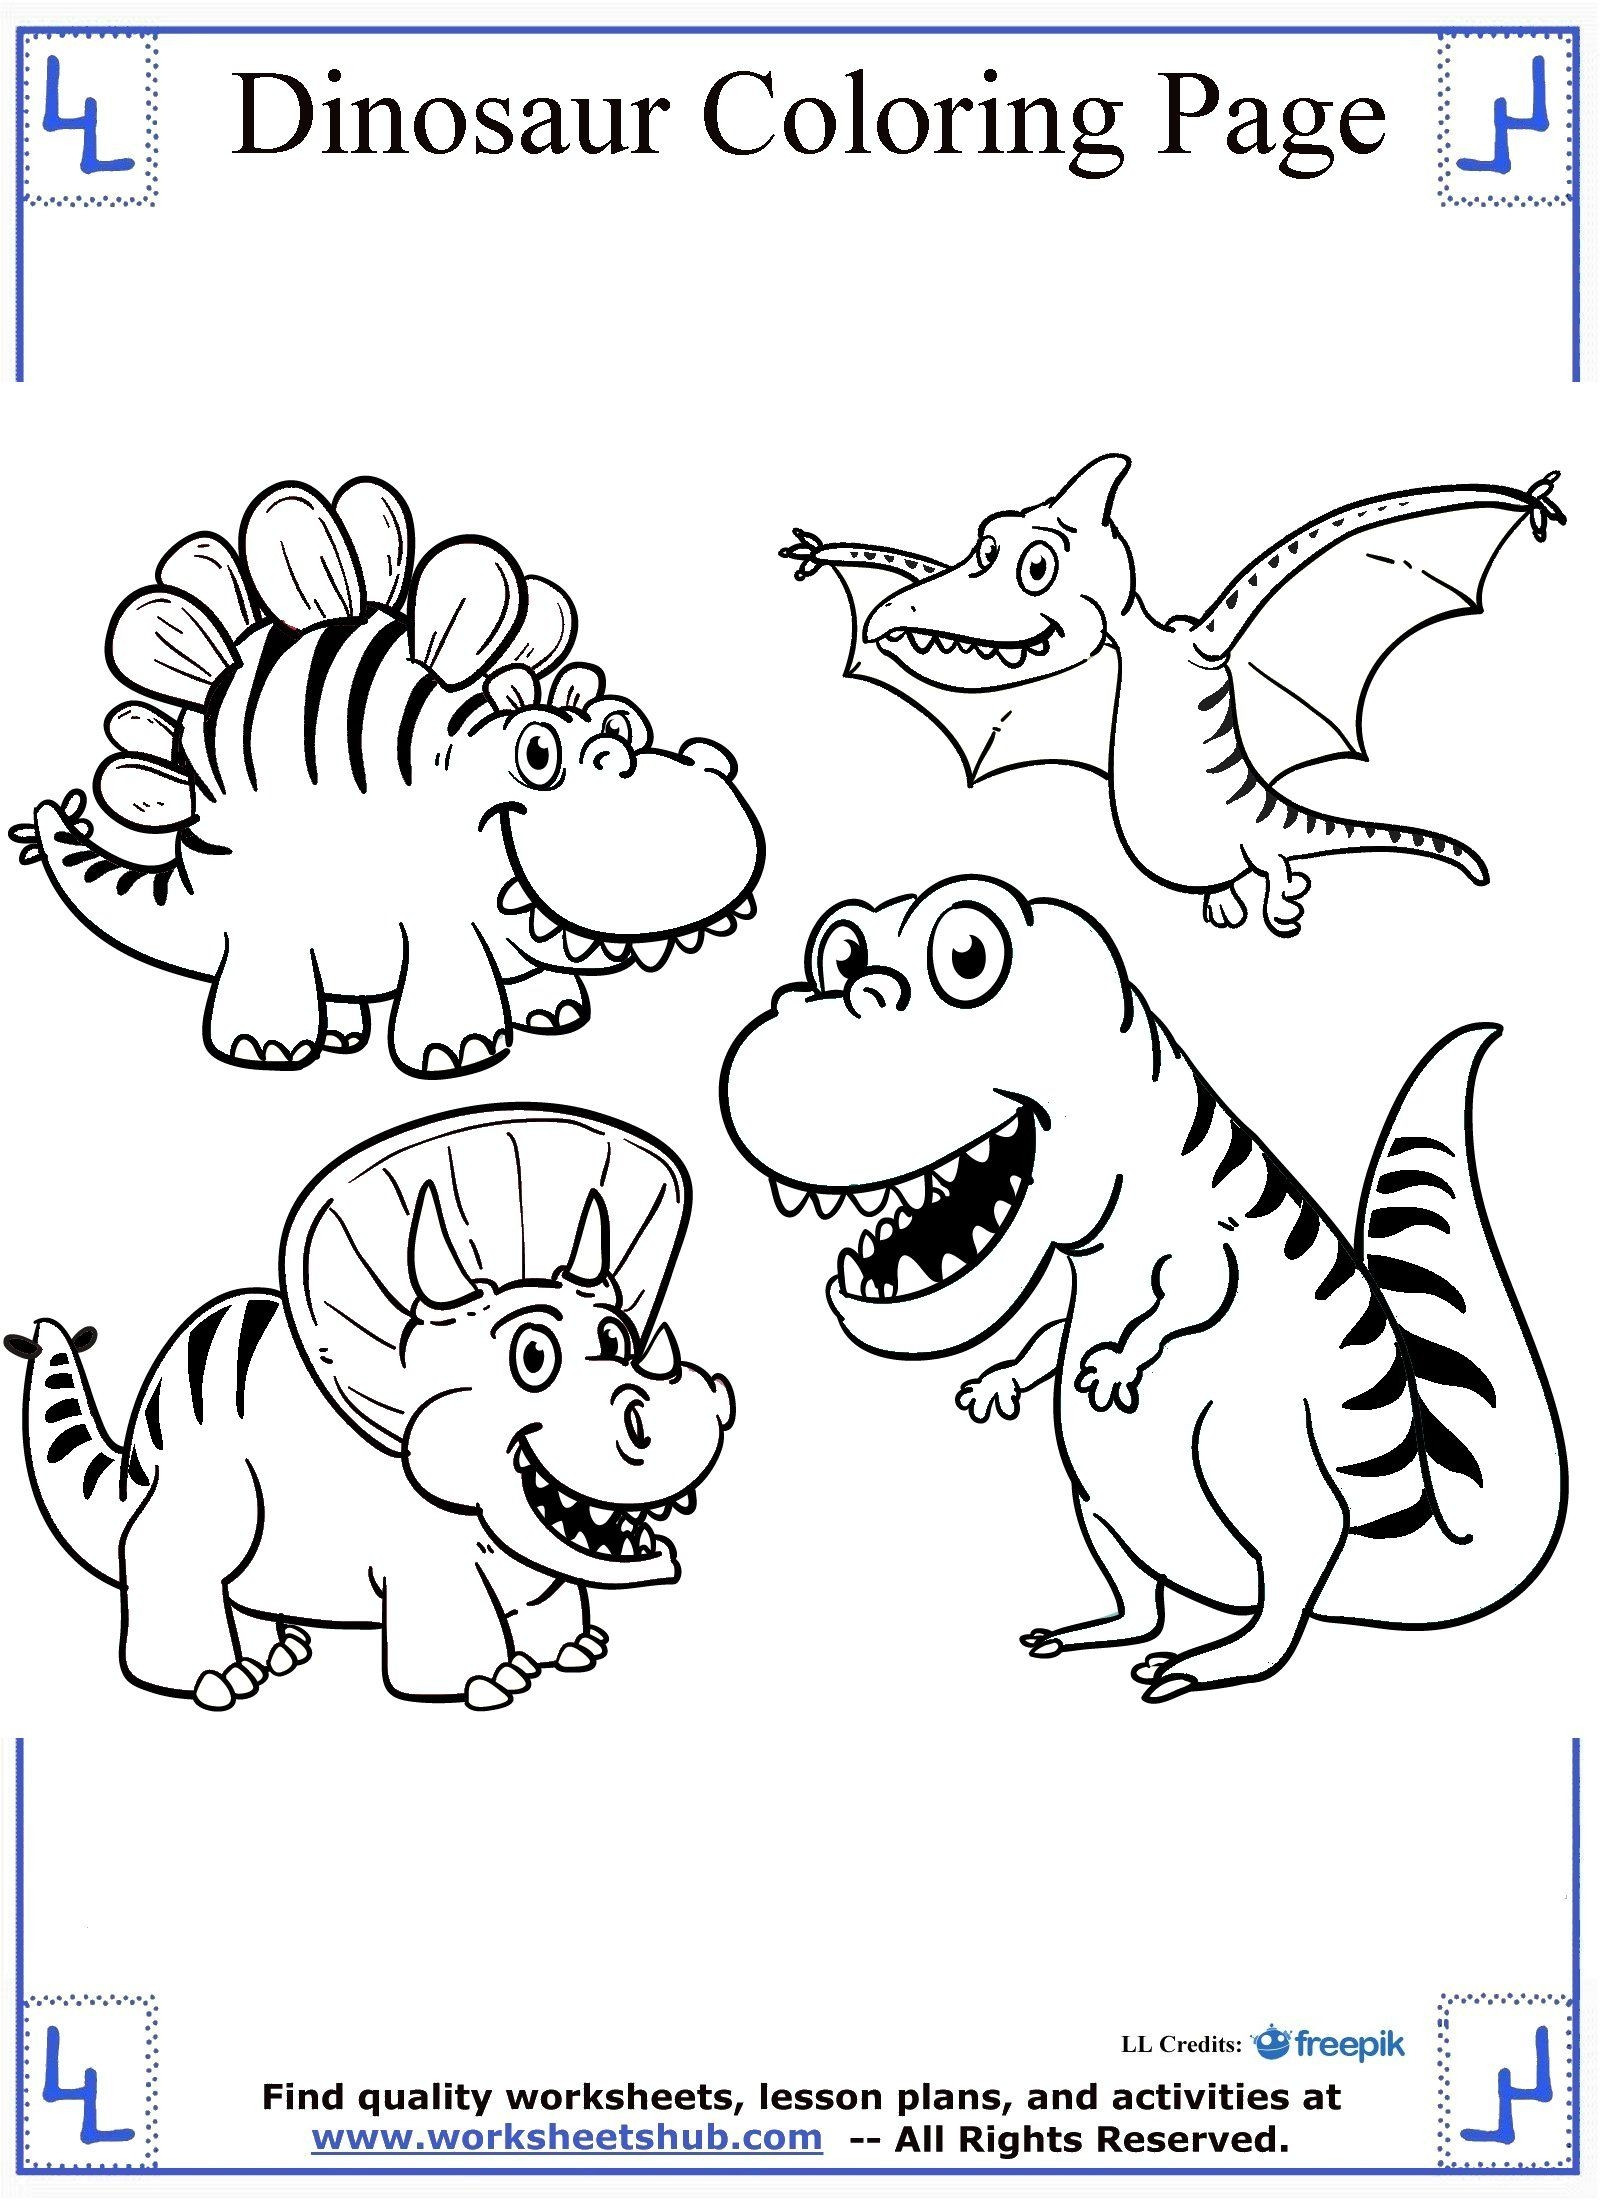 Dinosaur Worksheets for Preschoolers Free Dinosaur Color by Number Letter Preschool Printable